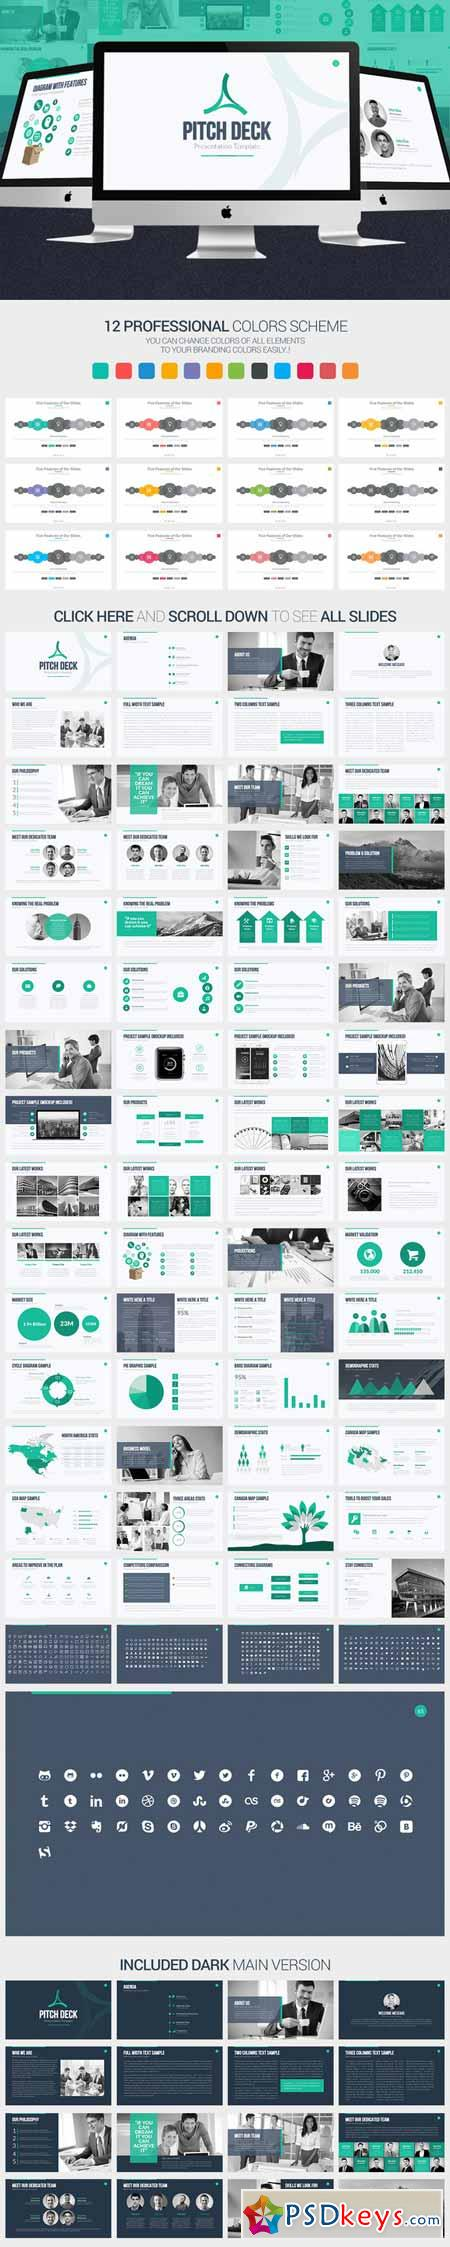 Pitch Deck PowerPoint Template 375469